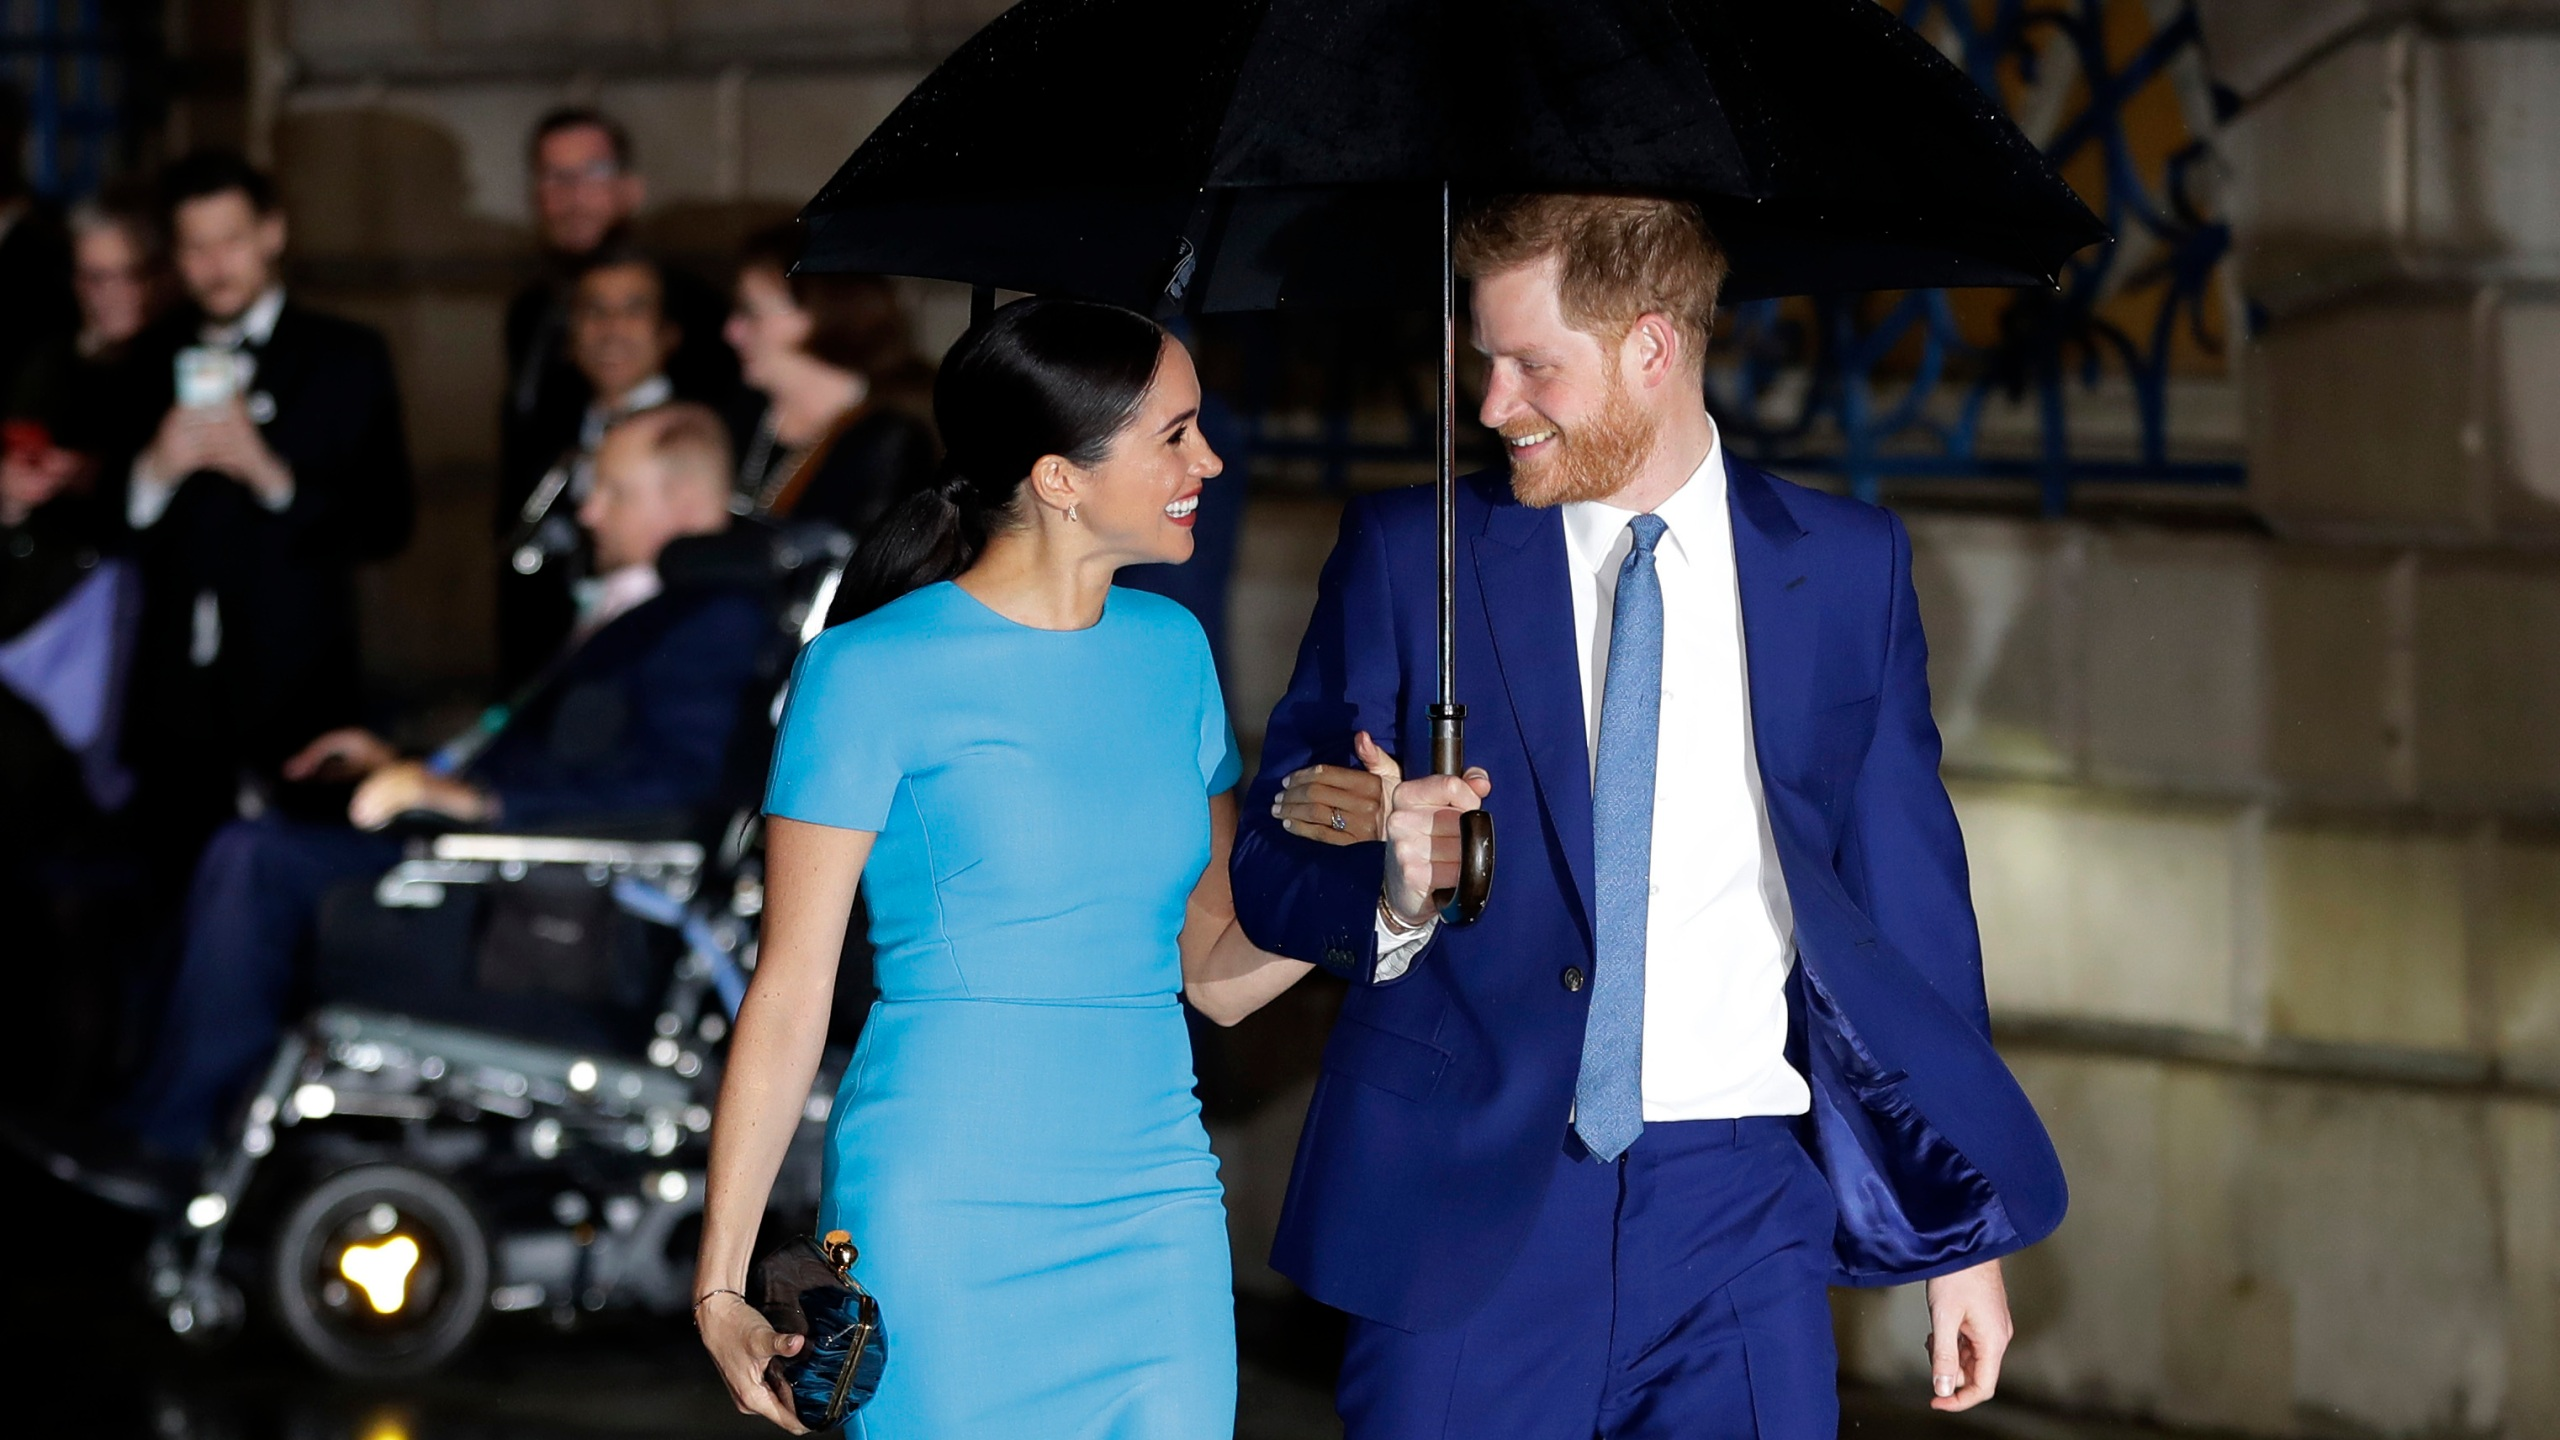 Britain's Prince Harry and Meghan, the Duke and Duchess of Sussex arrive at the annual Endeavour Fund Awards in London, Thursday, March 5, 2020. The second baby for the Duke and Duchess of Sussex is officially here: Meghan gave birth to a healthy girl on Friday, June 4, 2021. (AP Photo/Kirsty Wigglesworth, file)